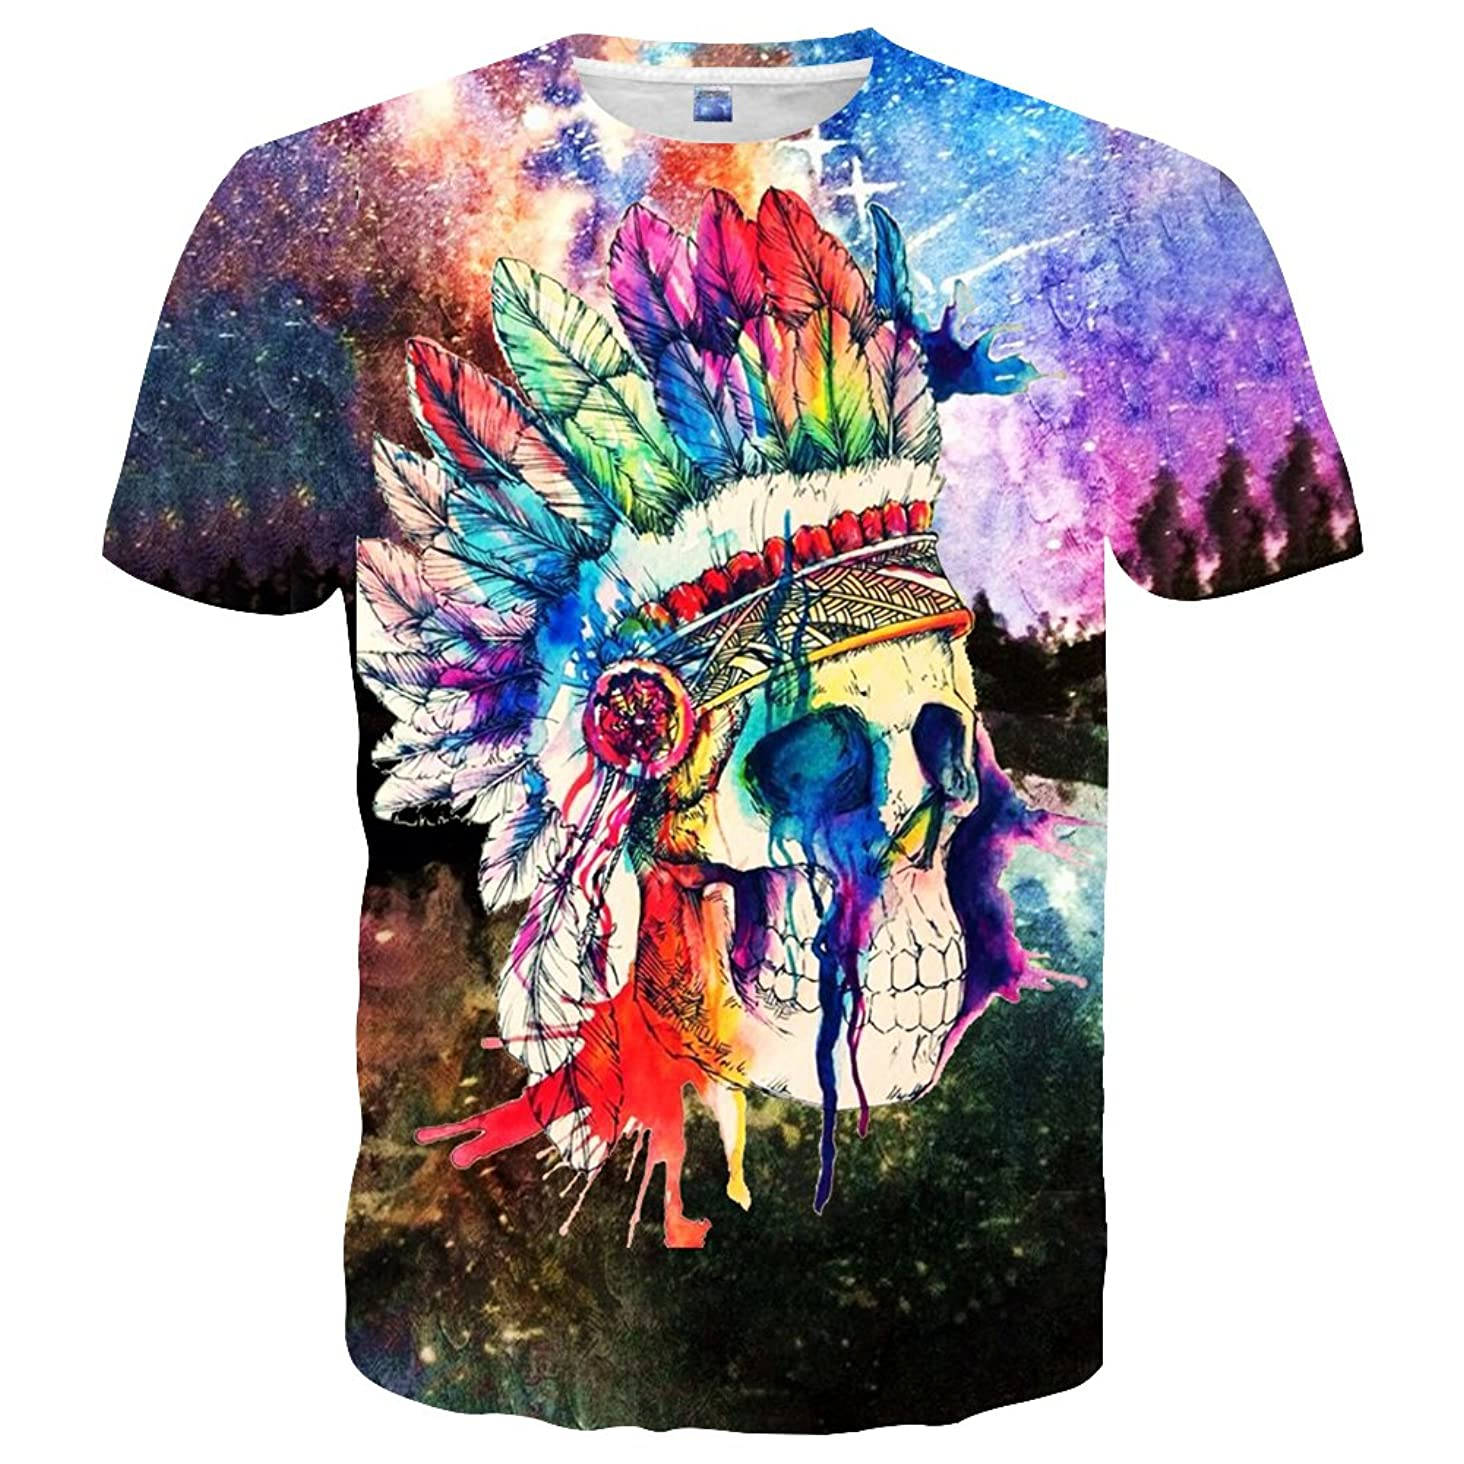 Yasswete Unisex Tops 3D Pattern Printed Short Sleeve T-Shirts